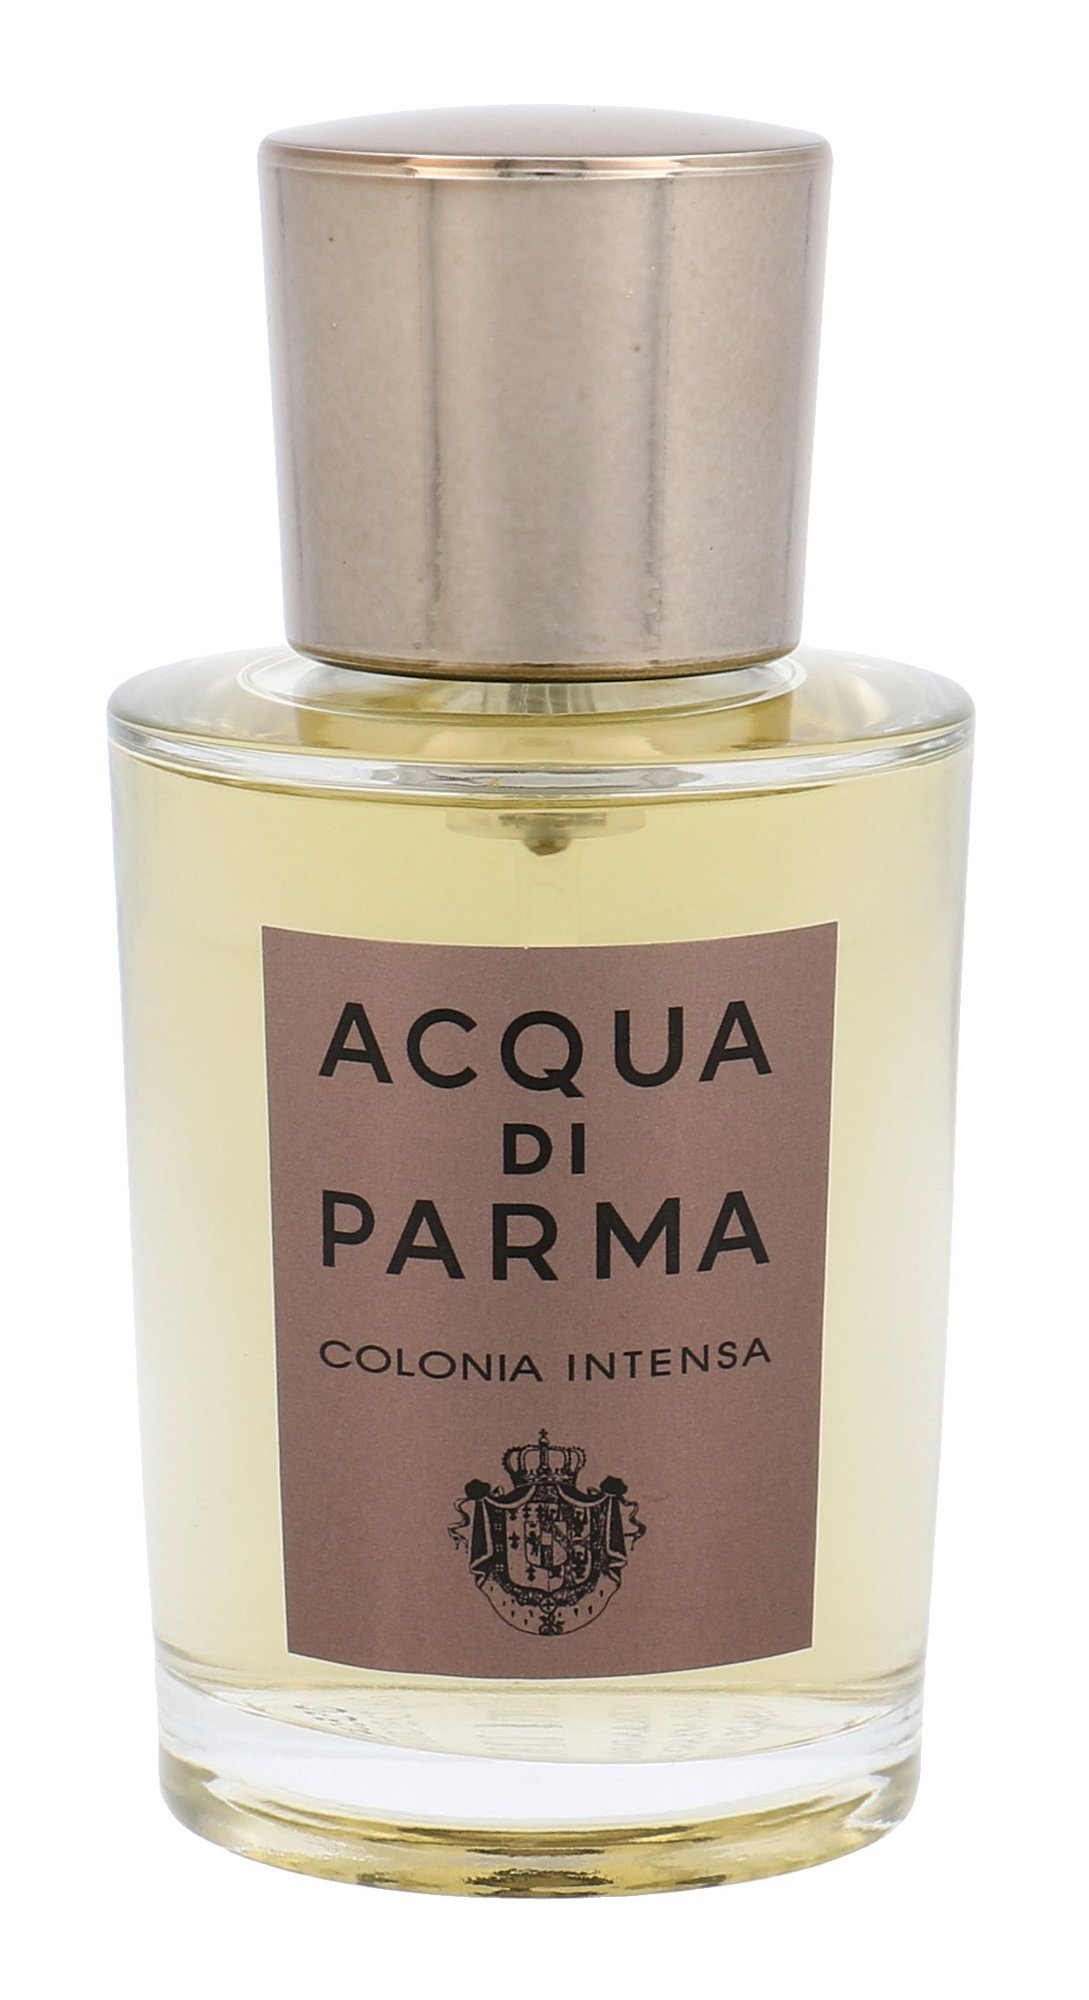 Acqua di Parma Colonia Intensa  Kolínská voda, M, 50 ml